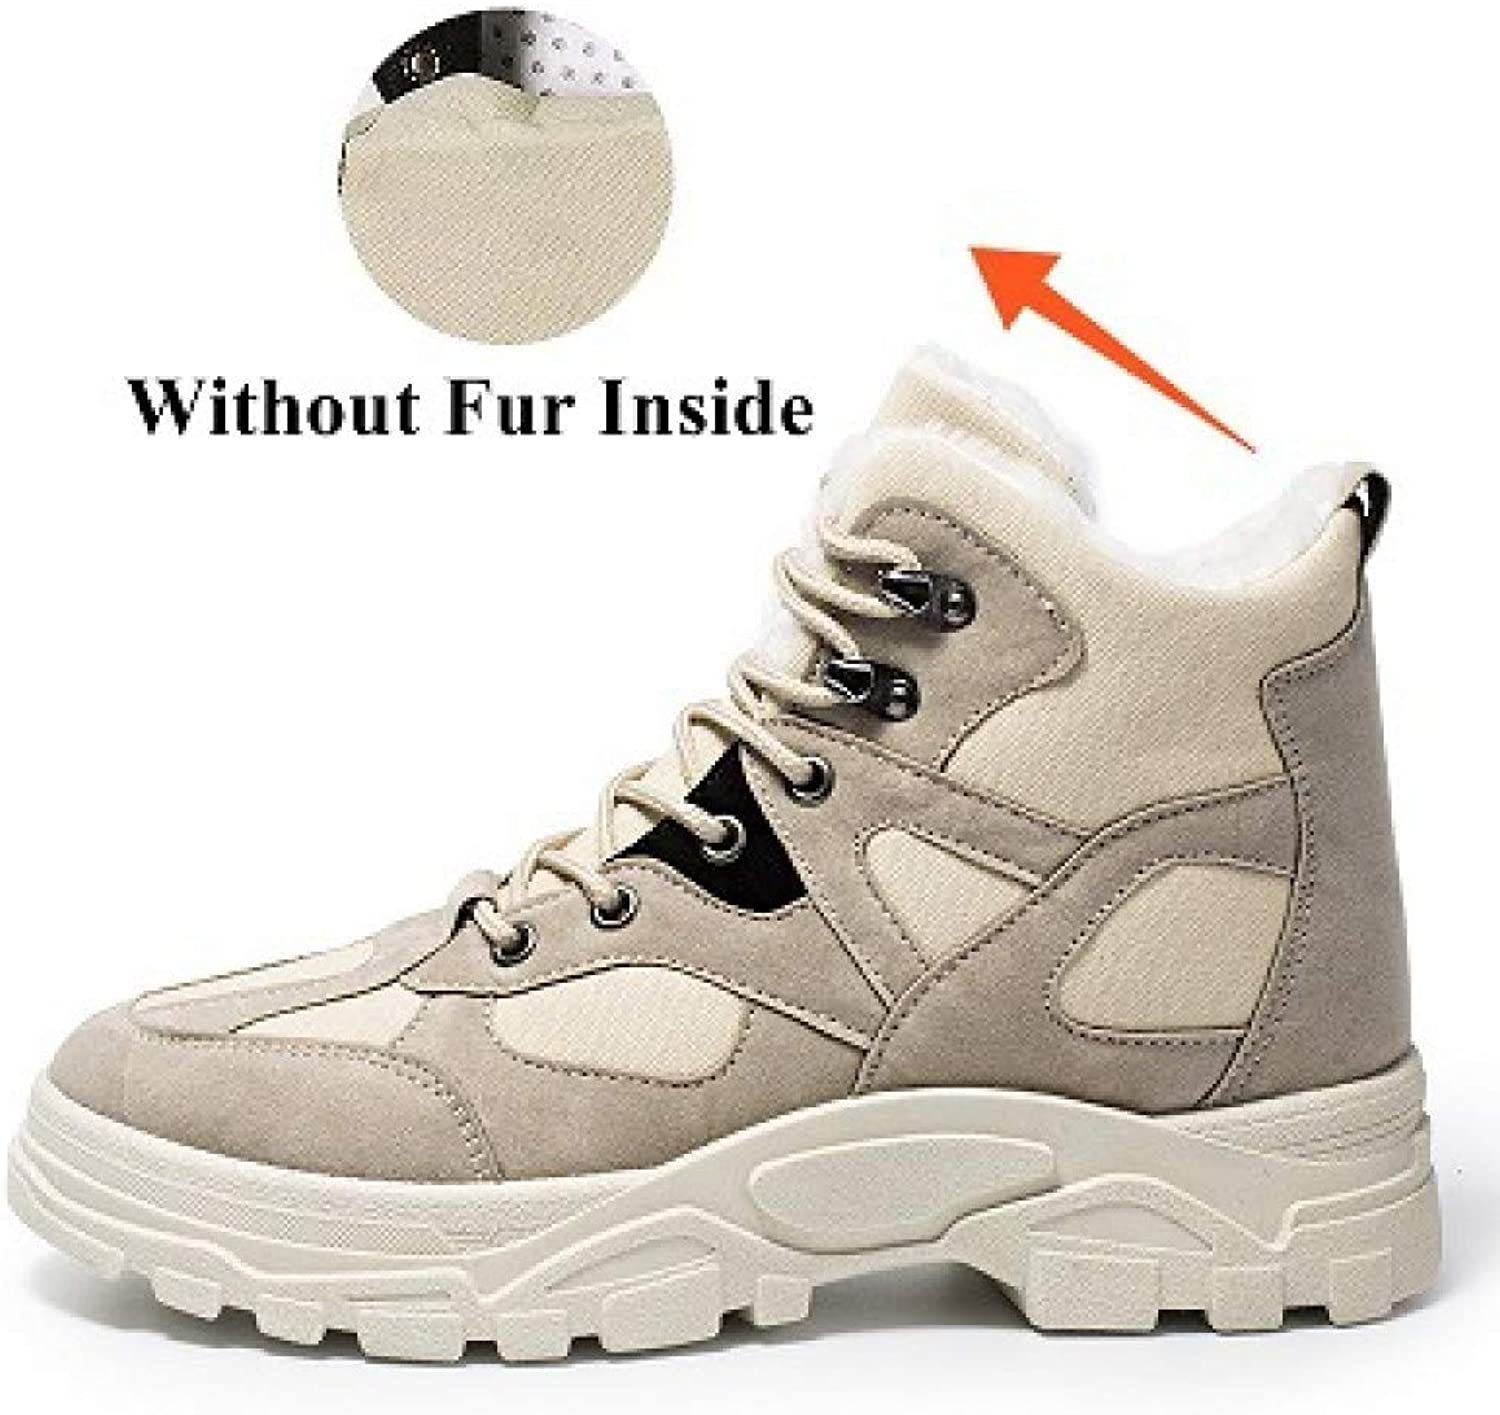 FHCGMX Fashion With Warm Work Boots Male shoes Adult For Men Vintage Canvas Ankle Boots Popular Design New